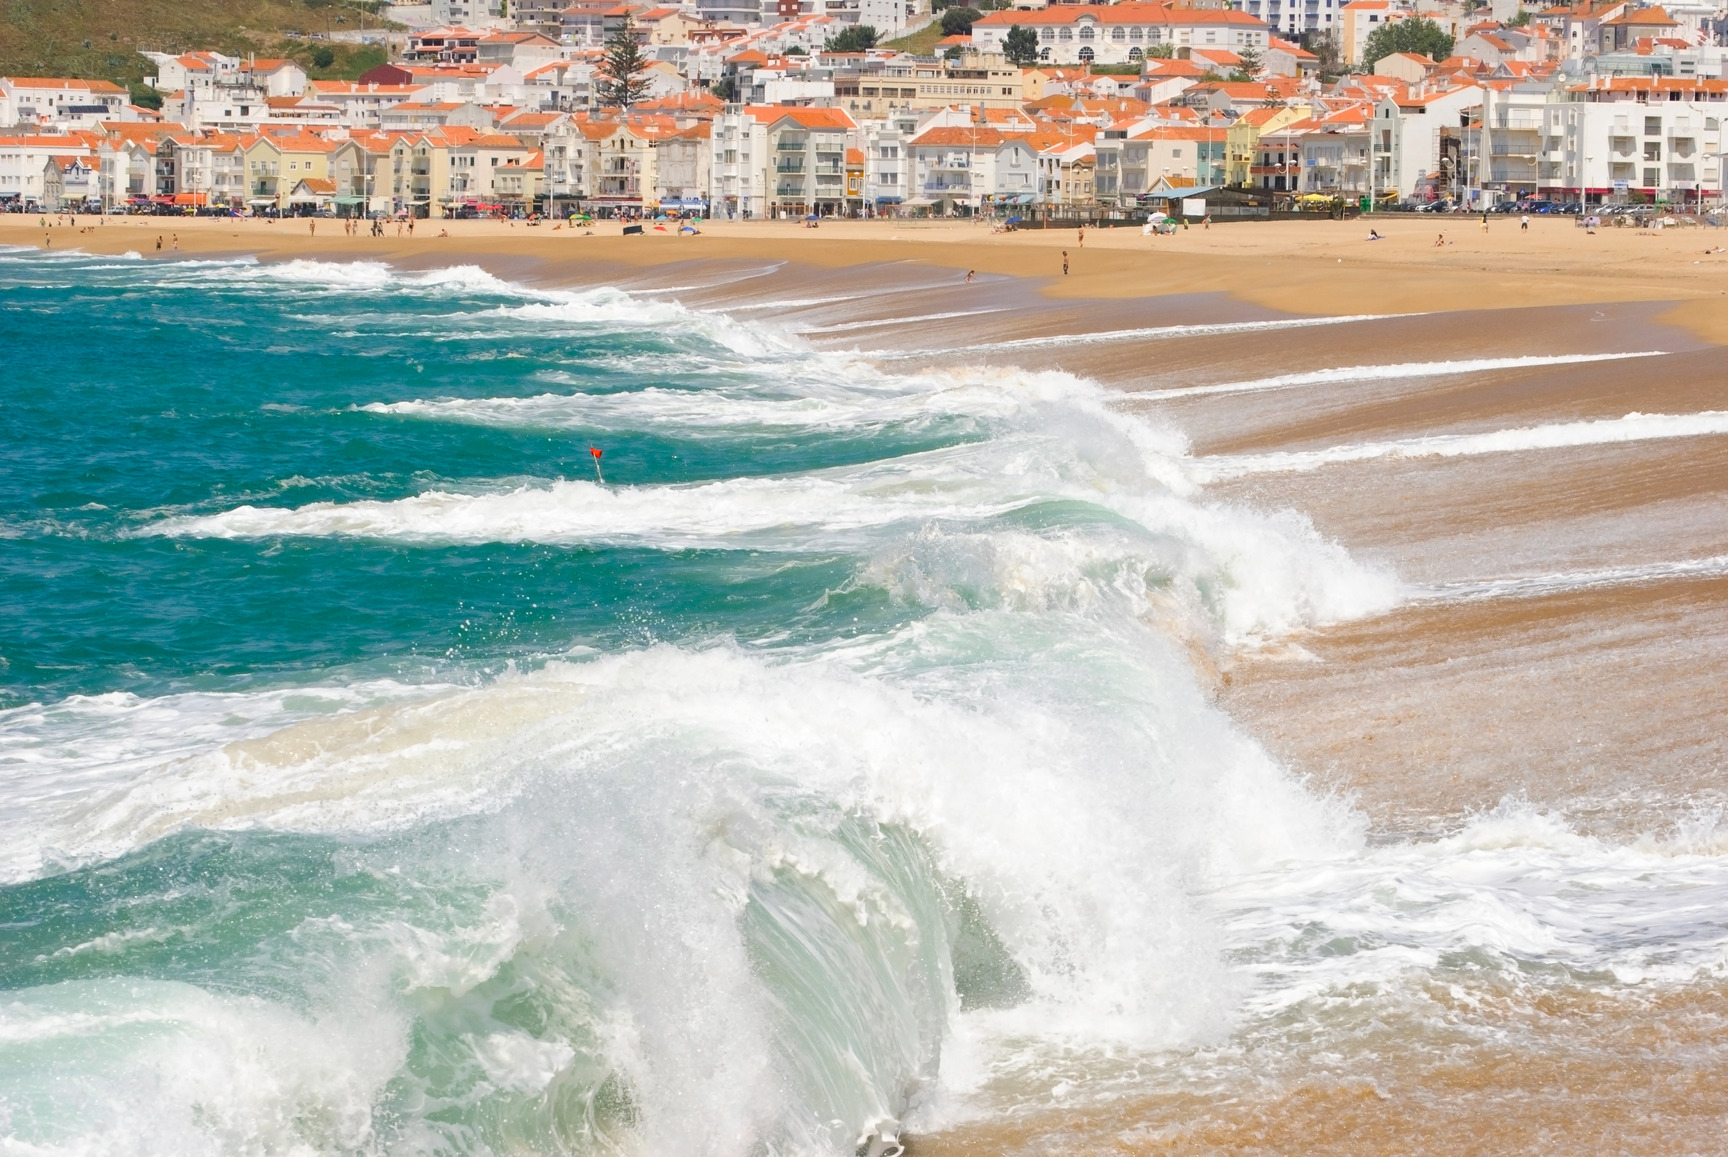 Waves crashing on a beach in Nazare, Portugal